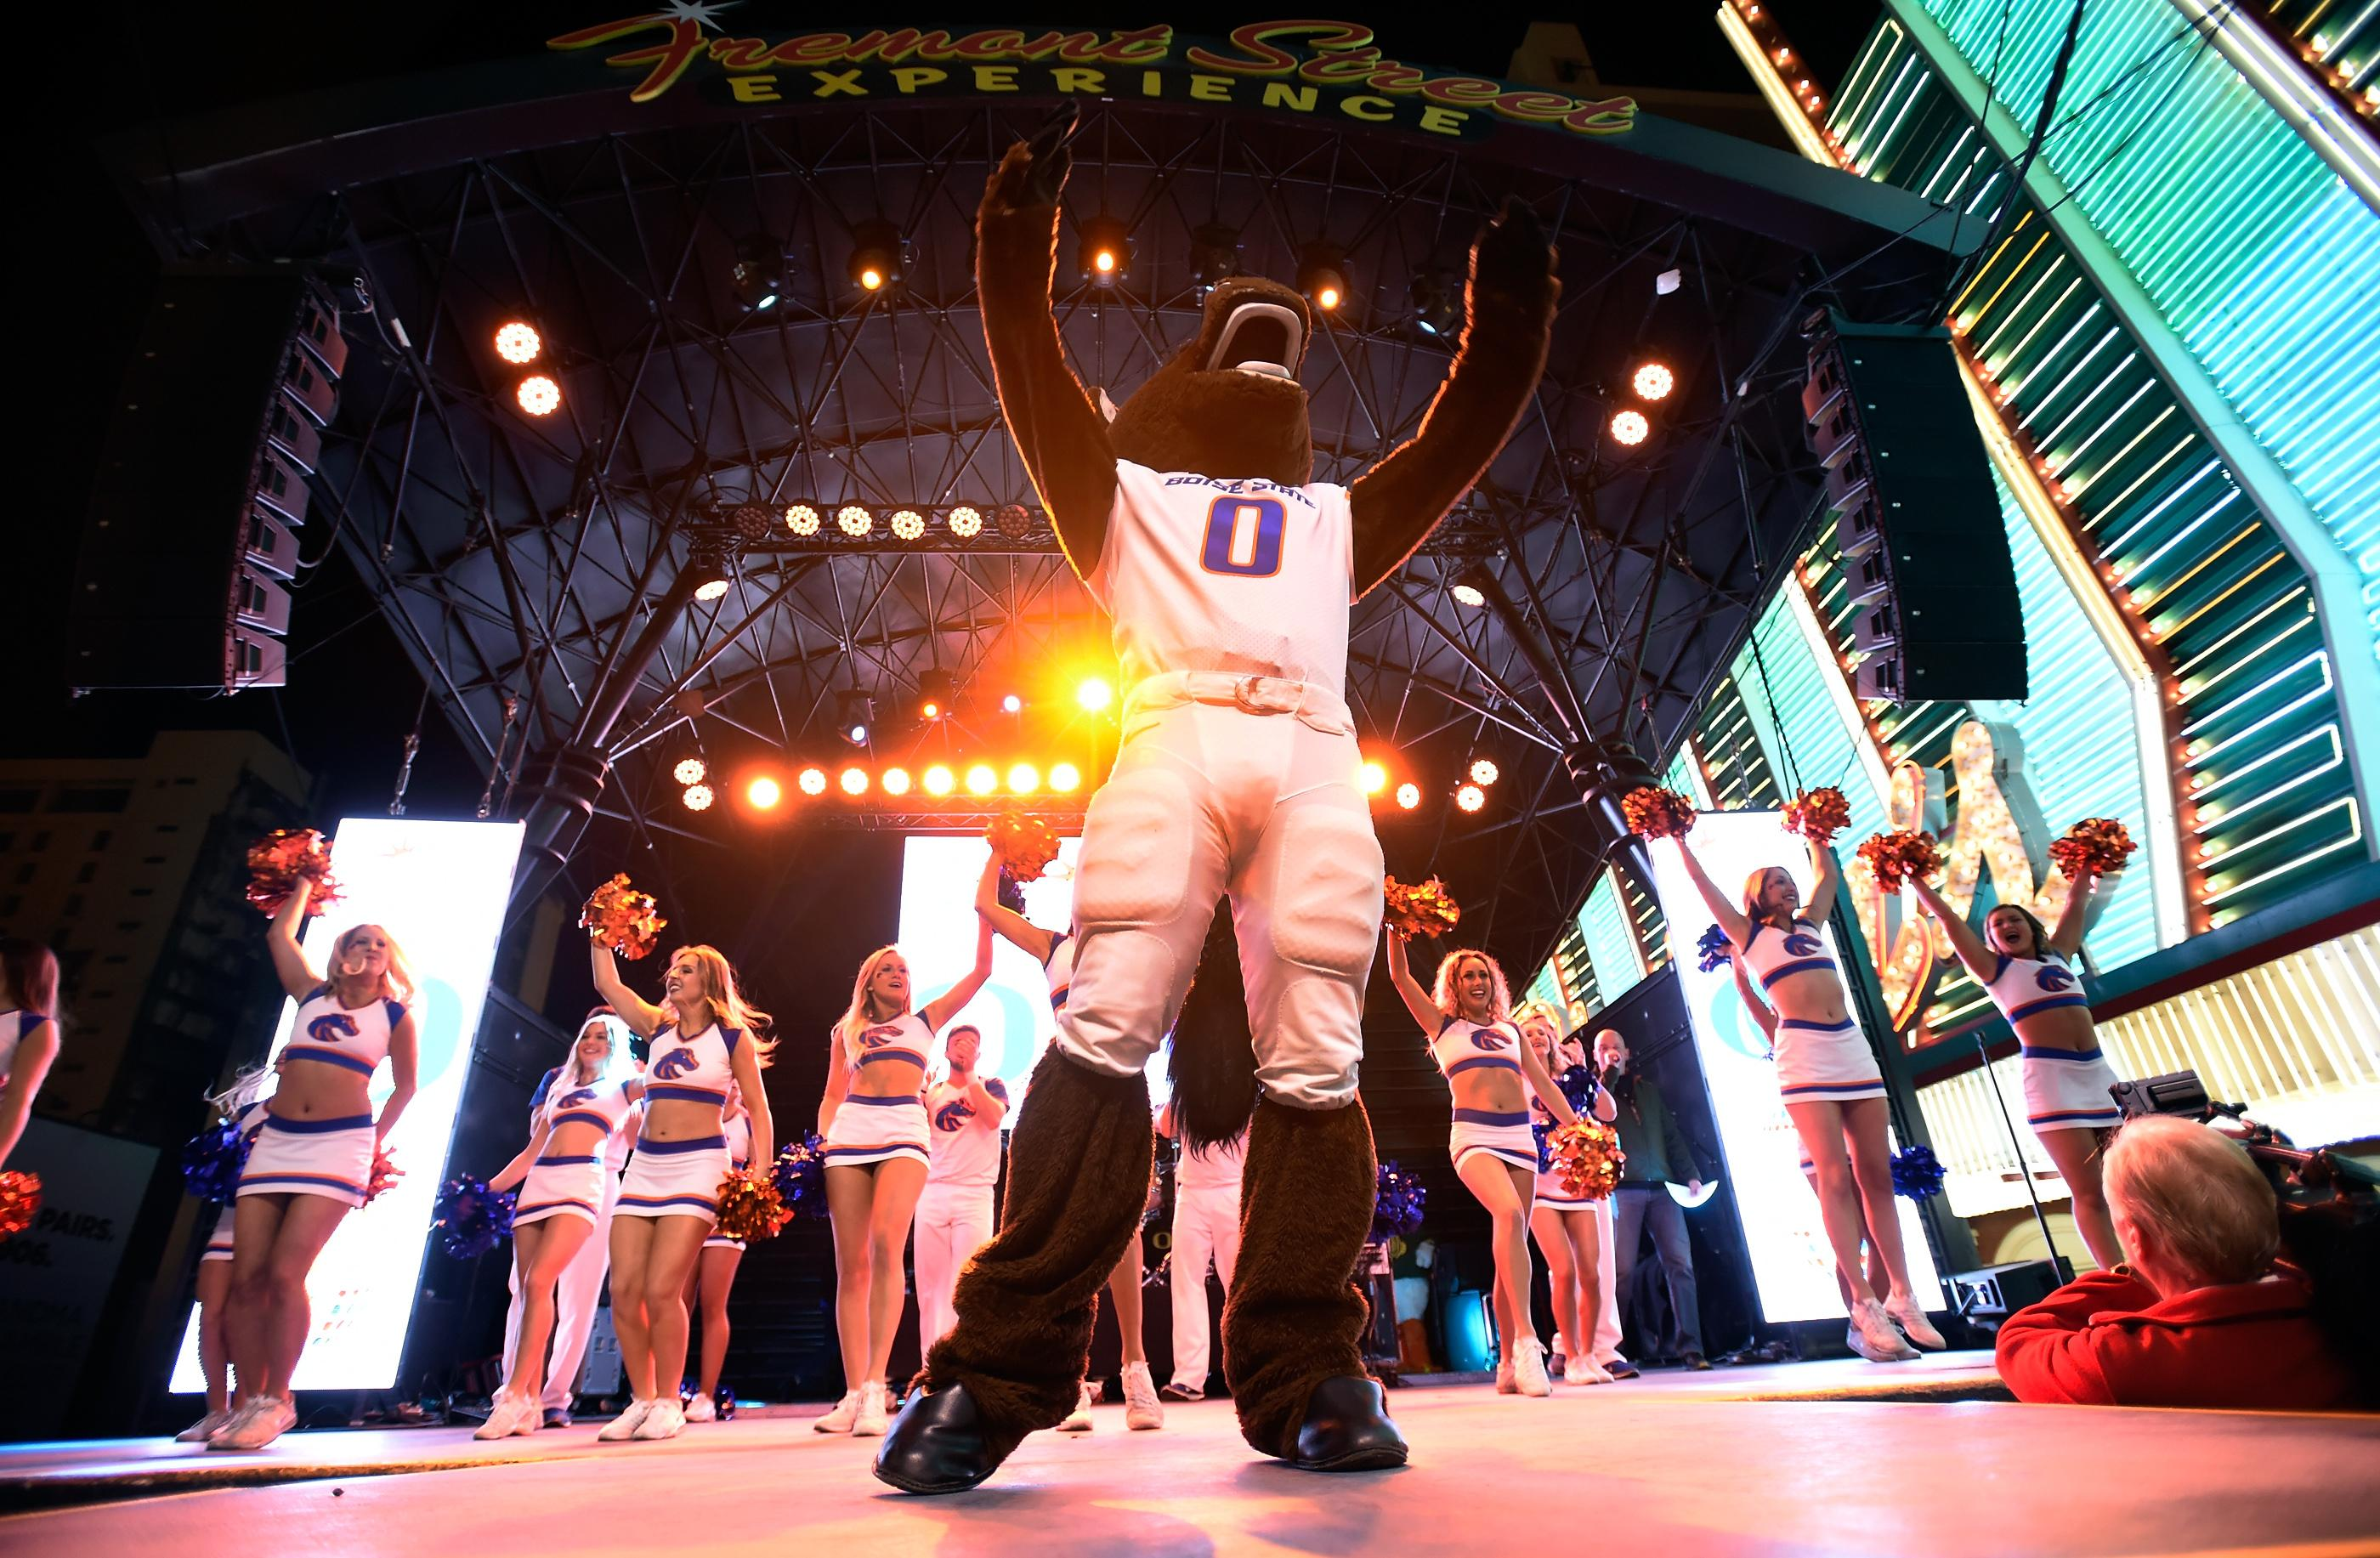 Buster Bronco, the mascot for Boise State performs during a pep rally at the Fremont Street Experience Friday, Dec. 15, 2017, in Las Vegas. The Boise State Bronco will take on the Oregon Ducks in the 26th edition of the Las Vegas Bowl at Sam Boyd Stadium on Saturday. CREDIT: David Becker/Las Vegas News Bureau